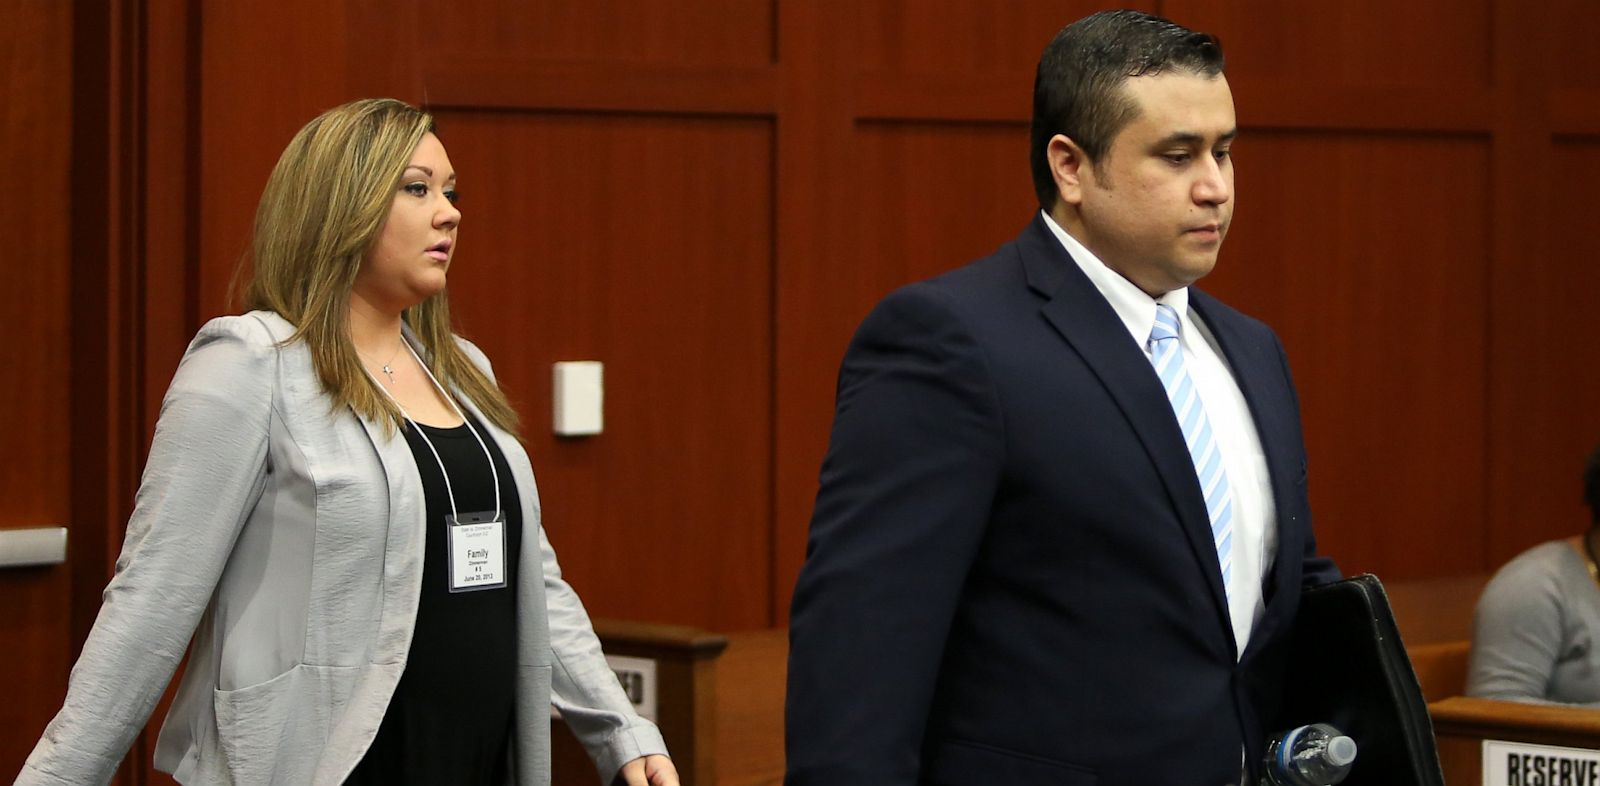 PHOTO: George Zimmerman and his wife Shellie